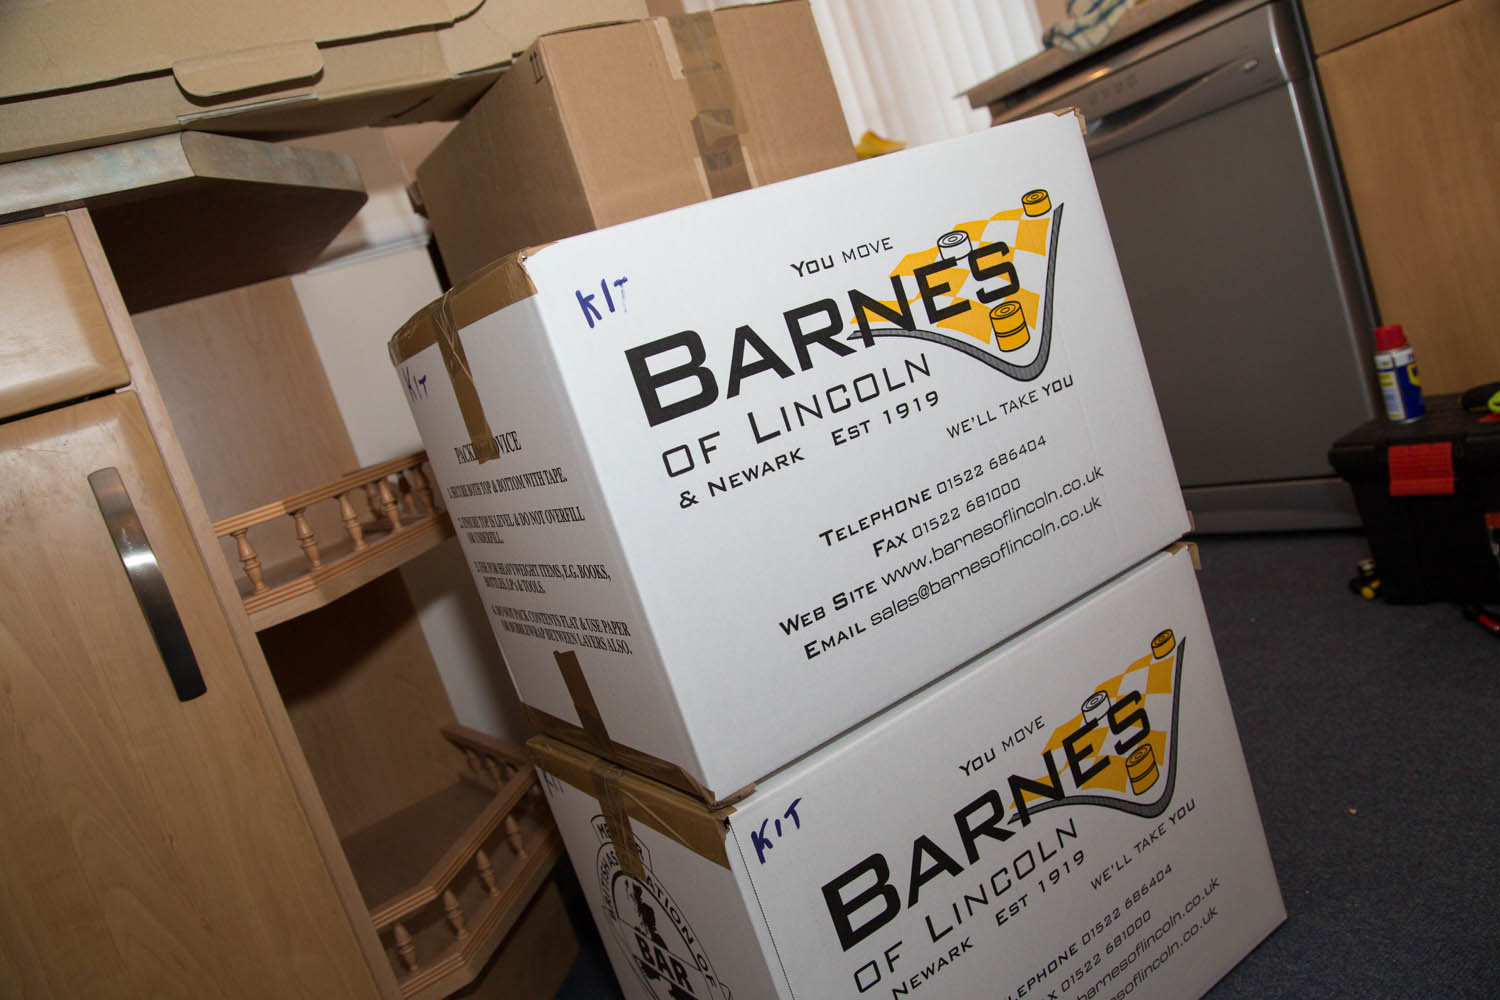 how to pack fragile items barnes of lincoln